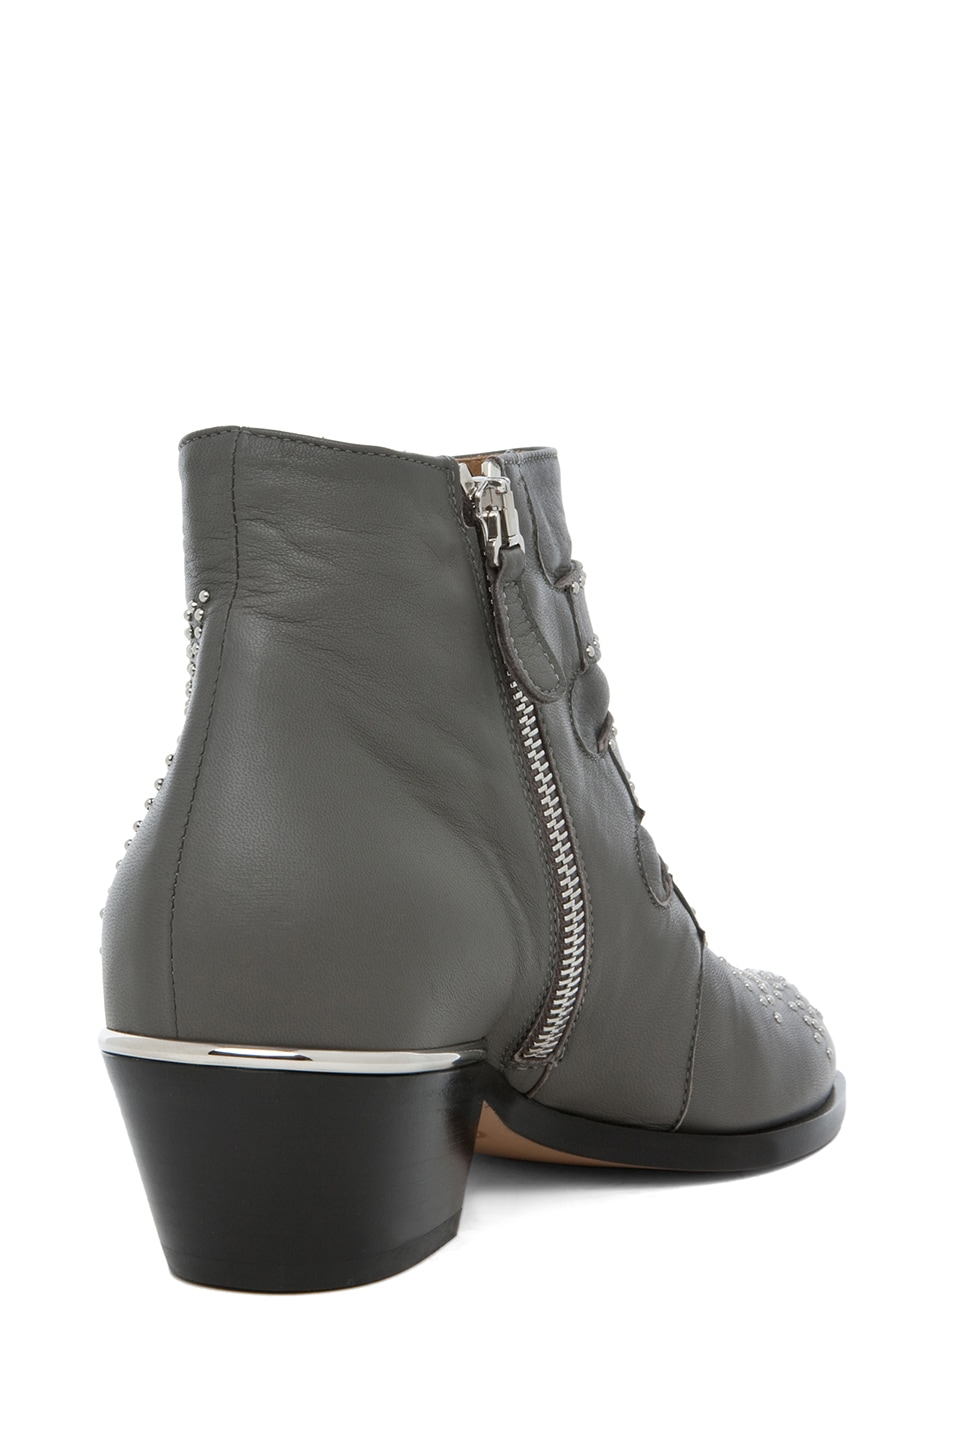 Image 3 of Chloe Susanna Studded Bootie in Charcoal